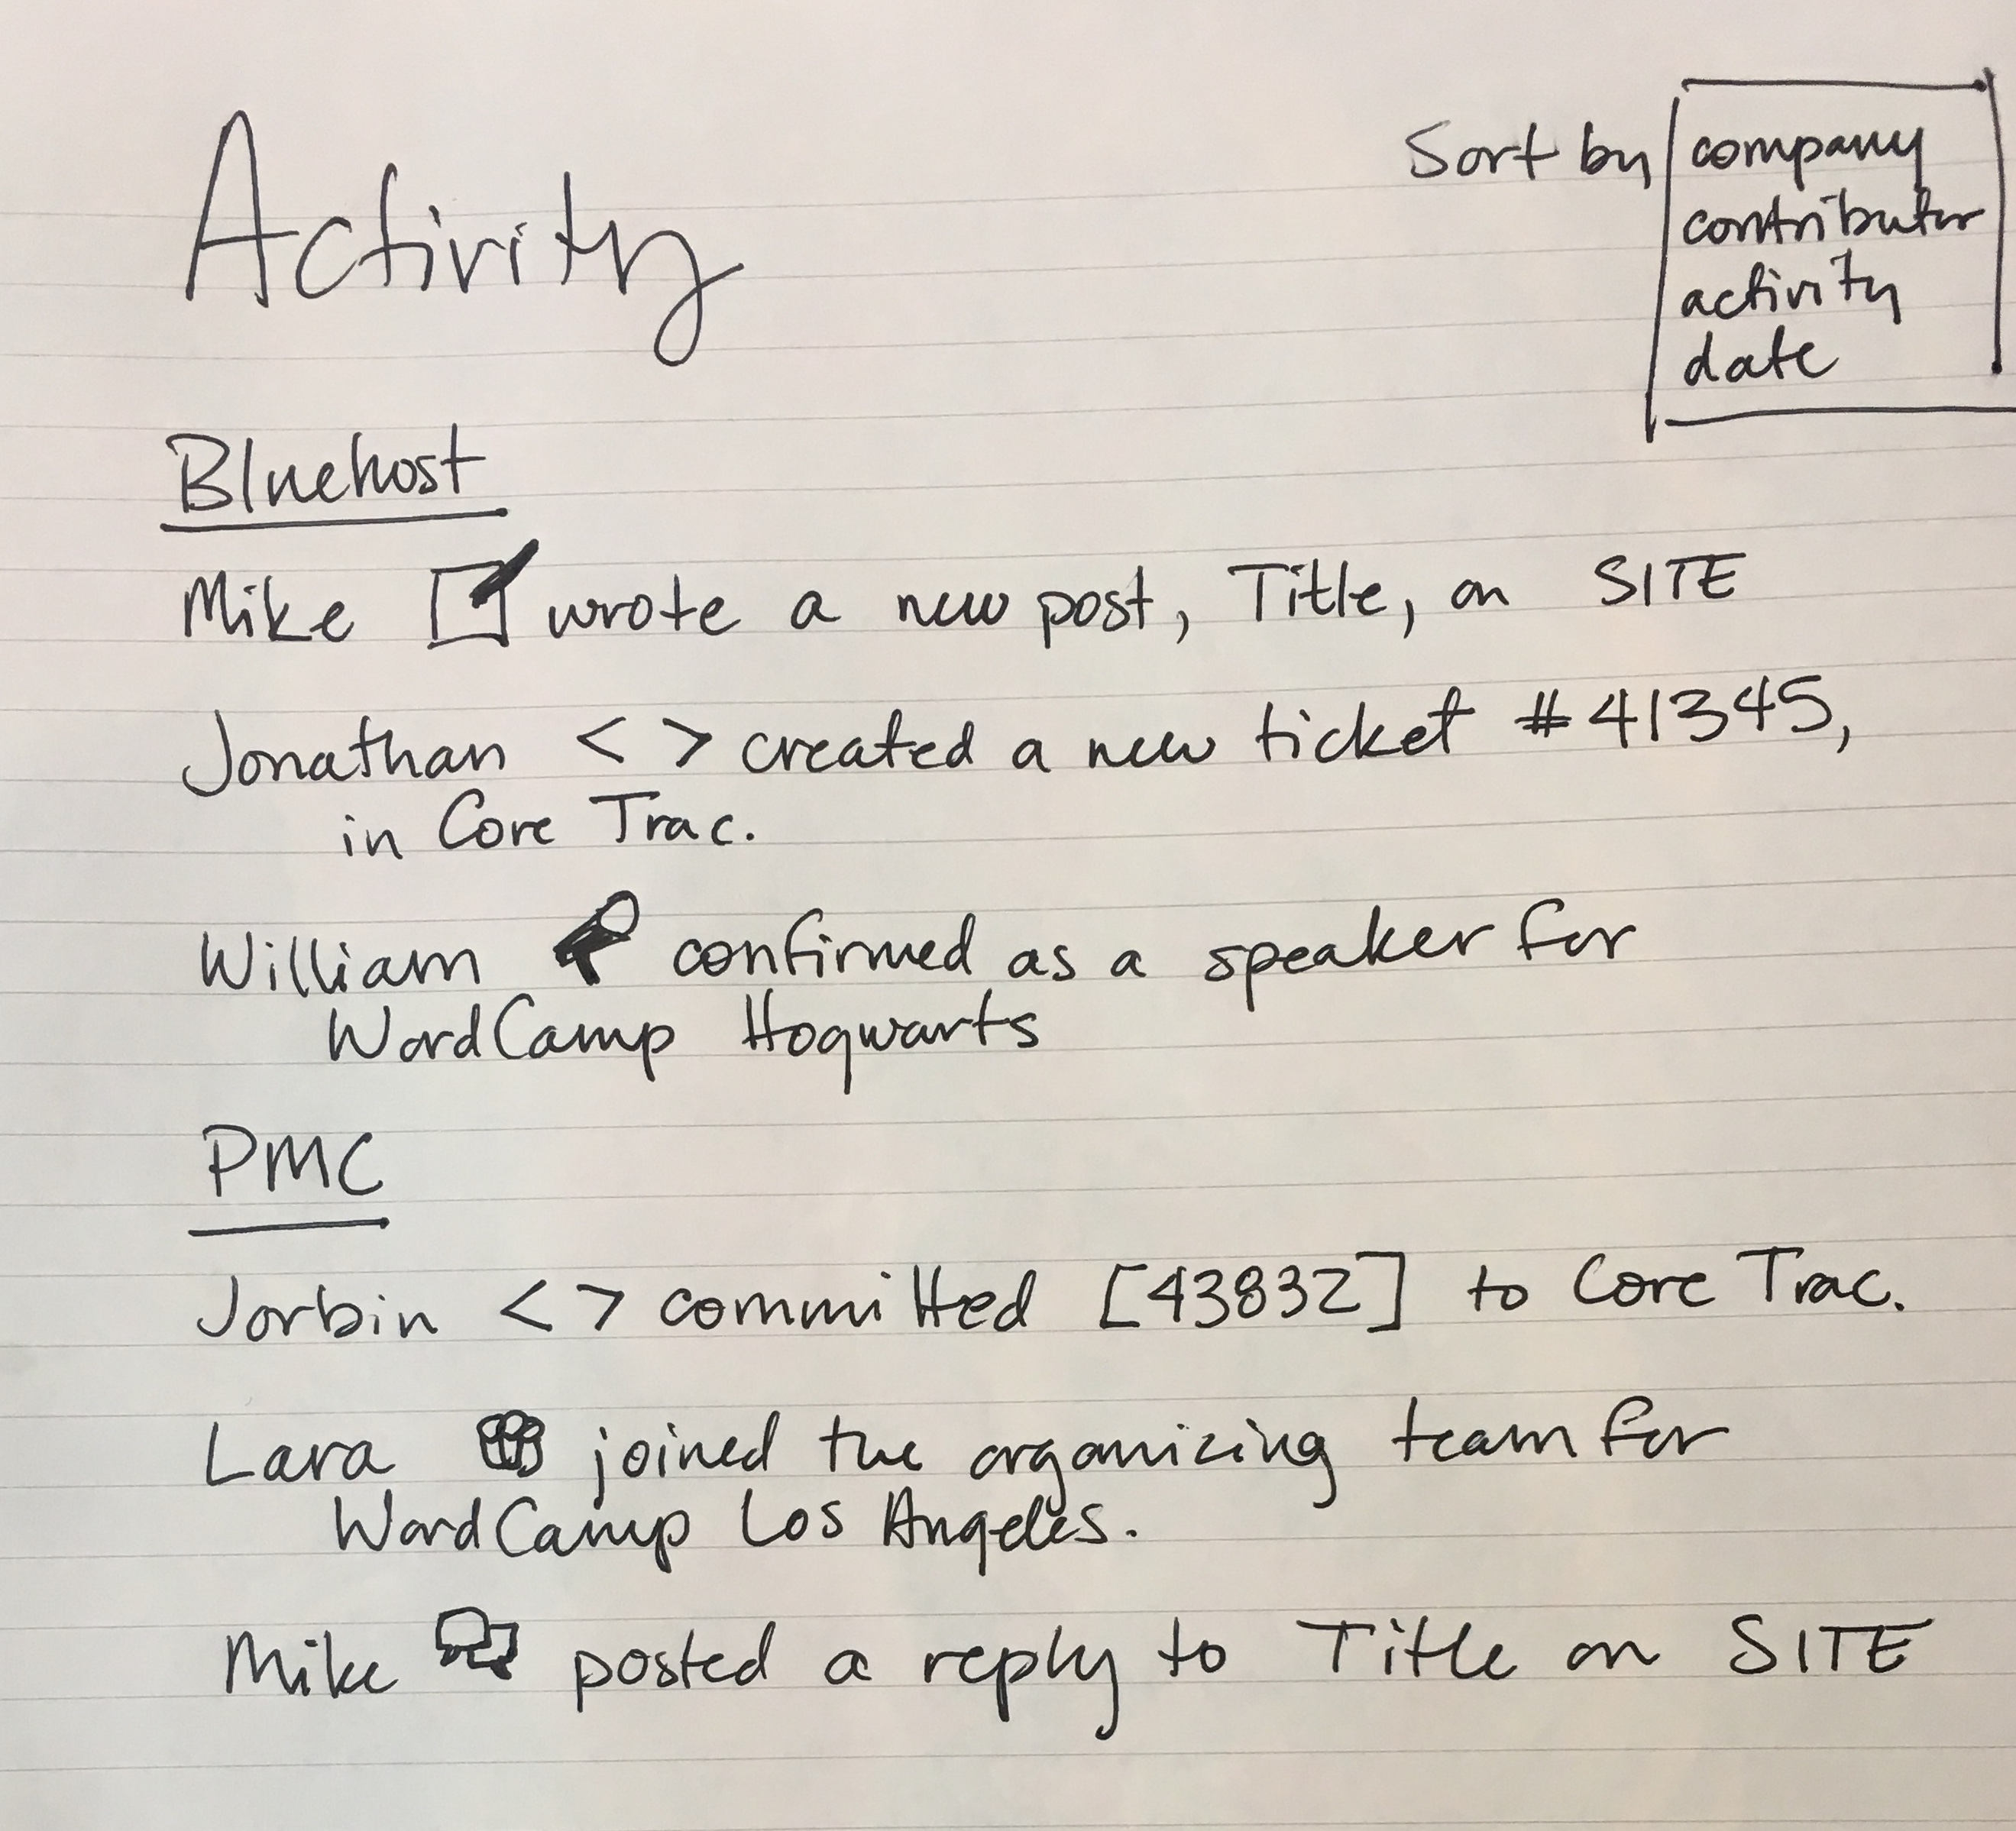 """A hand-written example of the activity stream idea, with a list of contributor actions divided by company. There is a """"sort by"""" drop-down list on the top right, with the options: company, contributor, activity, and date."""